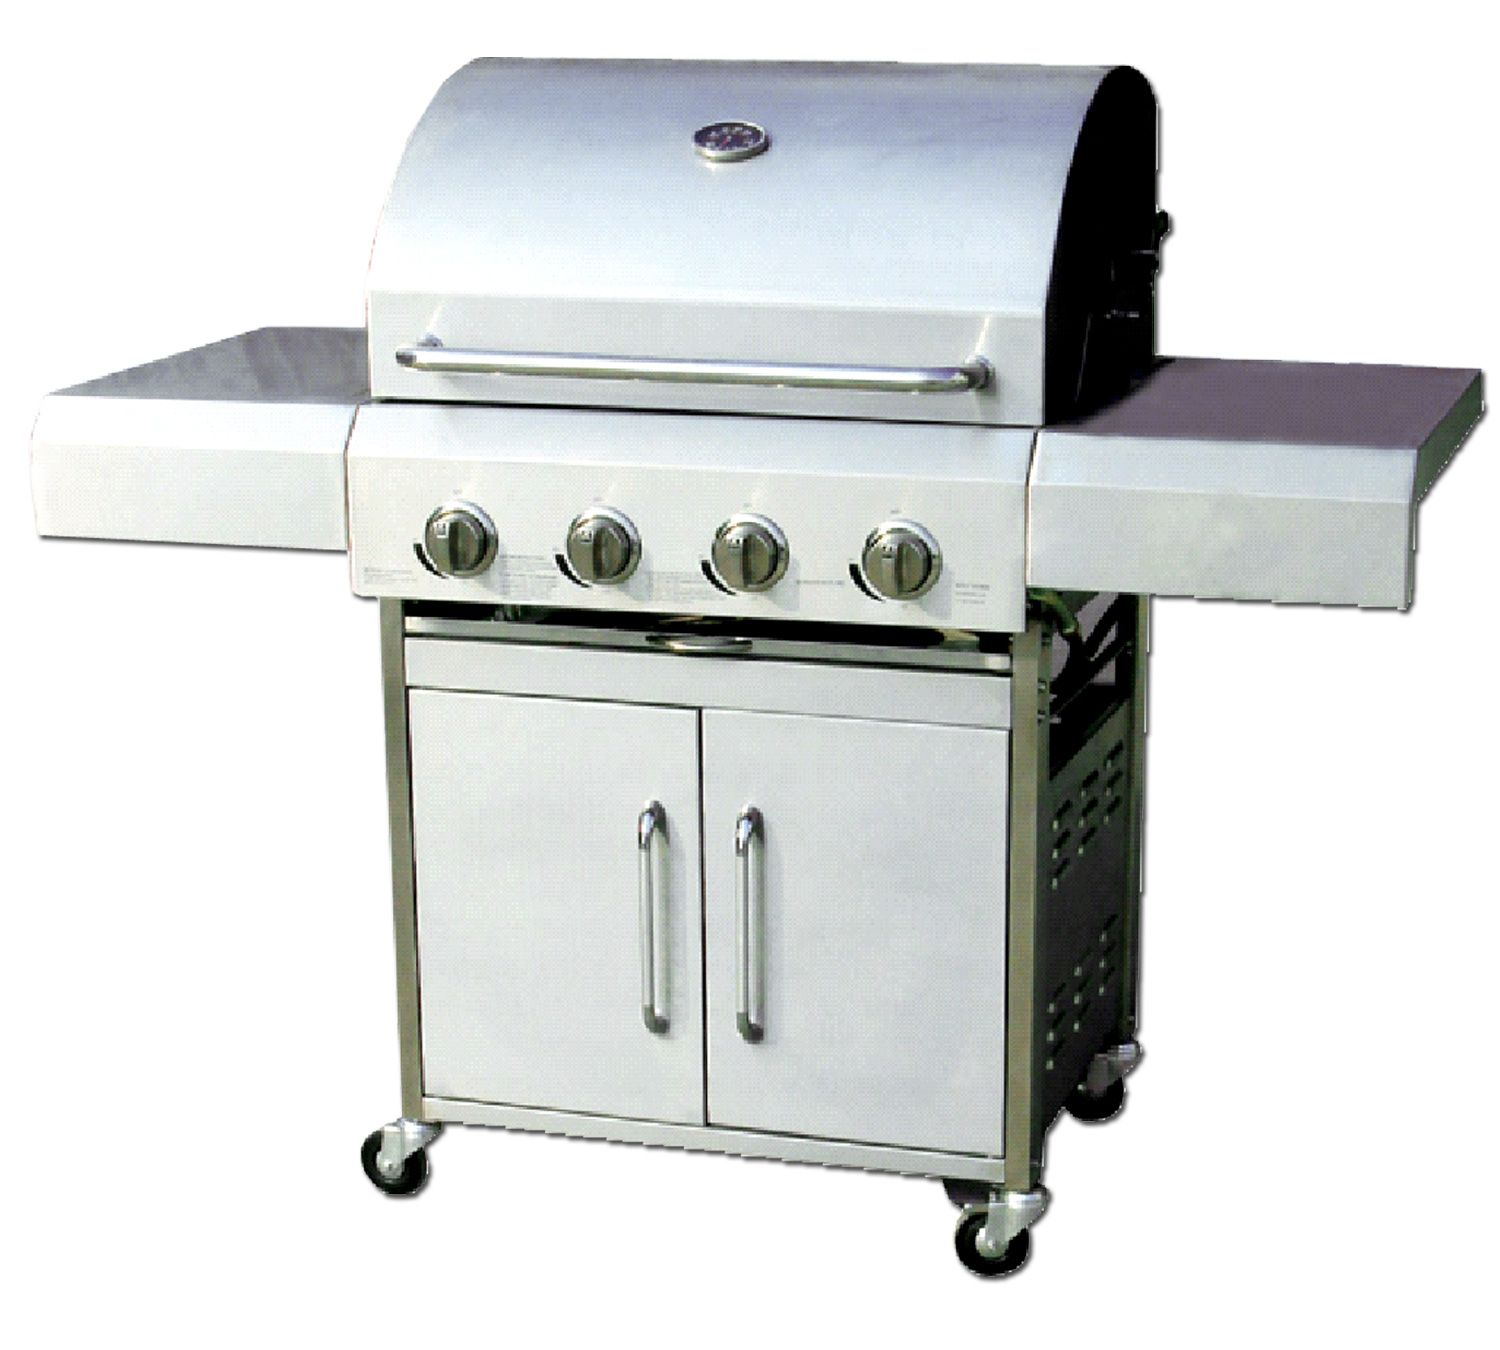 BBQ Smoker Grill | Indoor or outdoor grill and BBQ | Pinterest